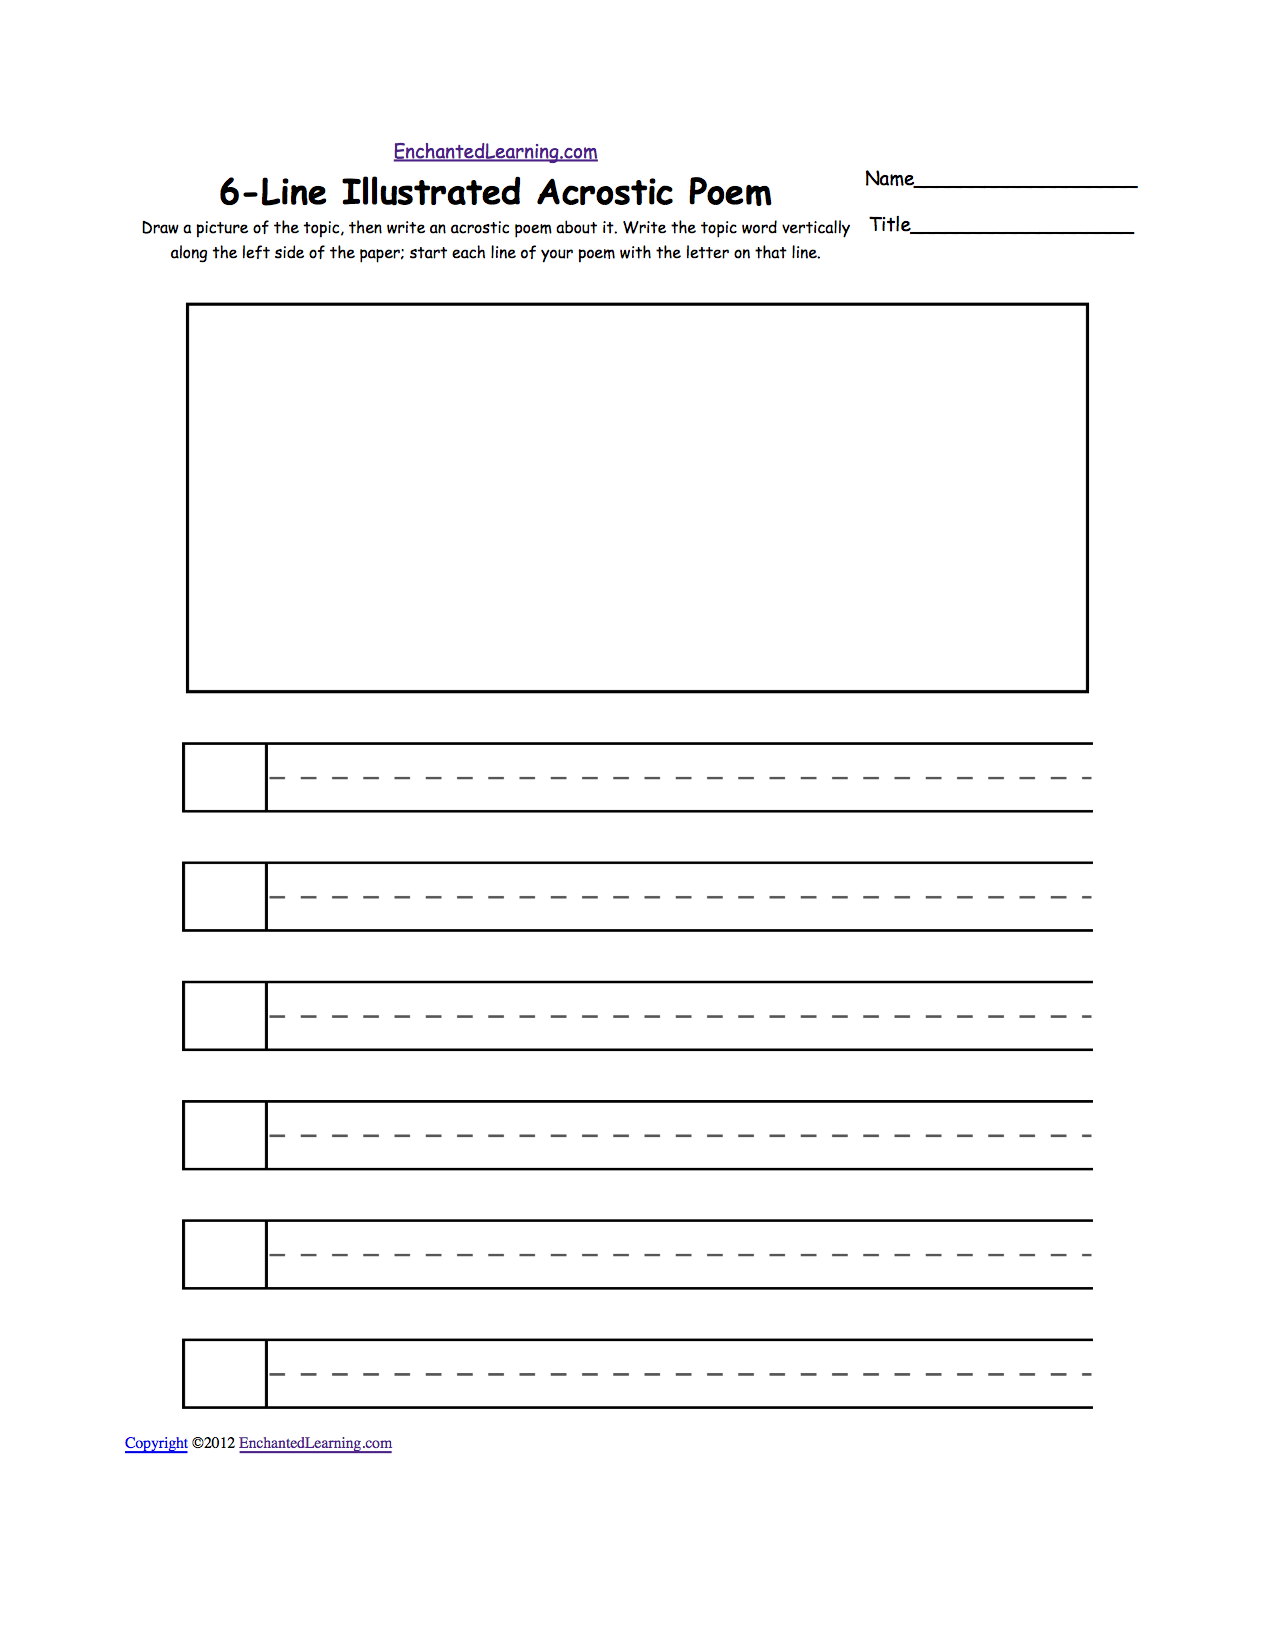 Blank Illustrated Acrostic Poem Worksheets Handwriting Lines – Writing Lines Template